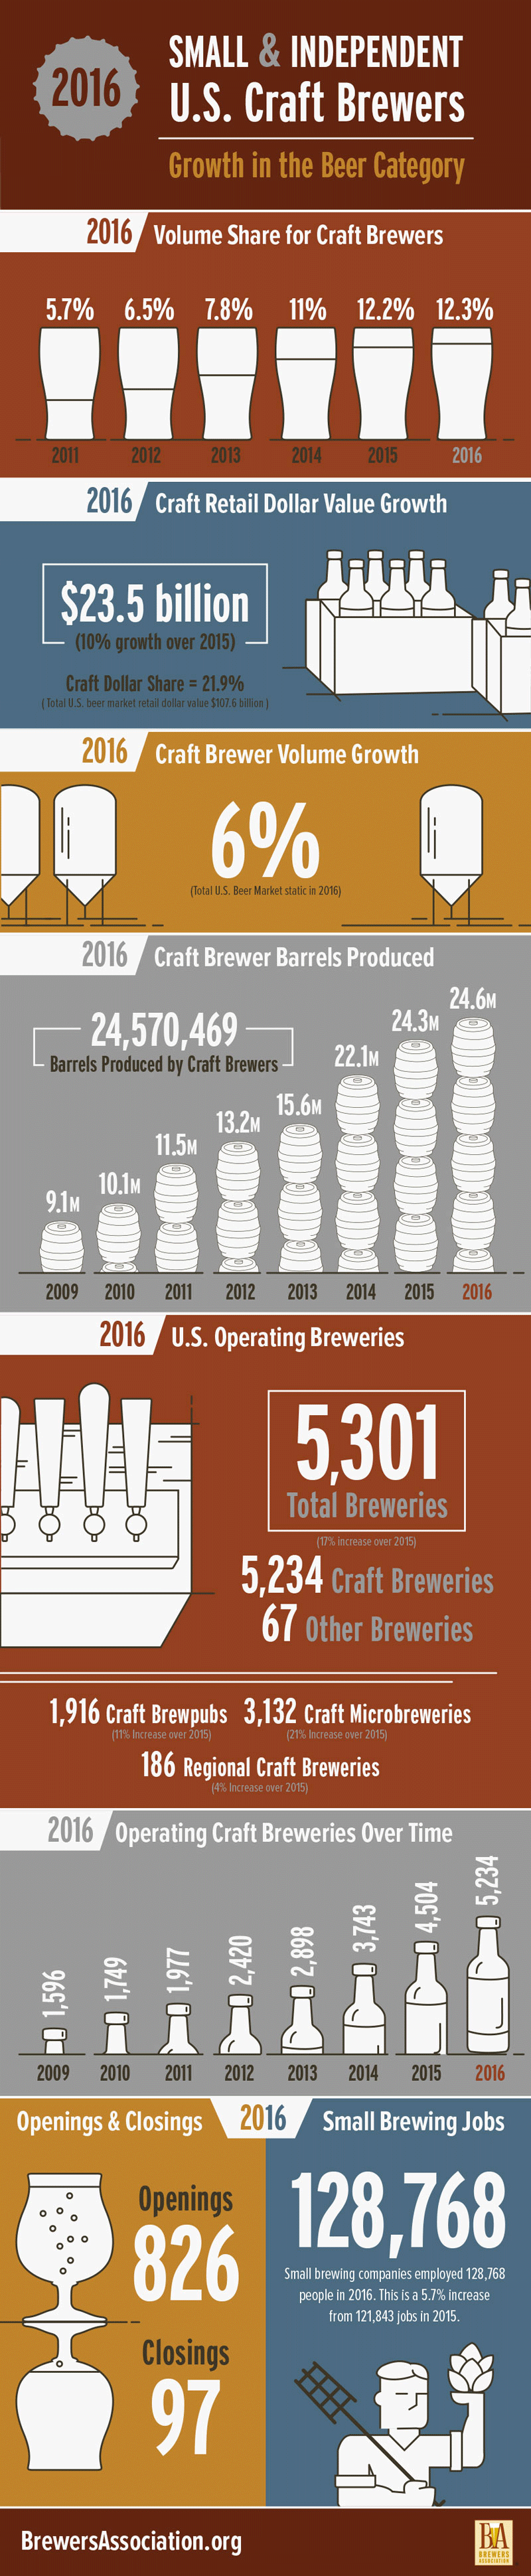 Image courtesy of the Brewers Association